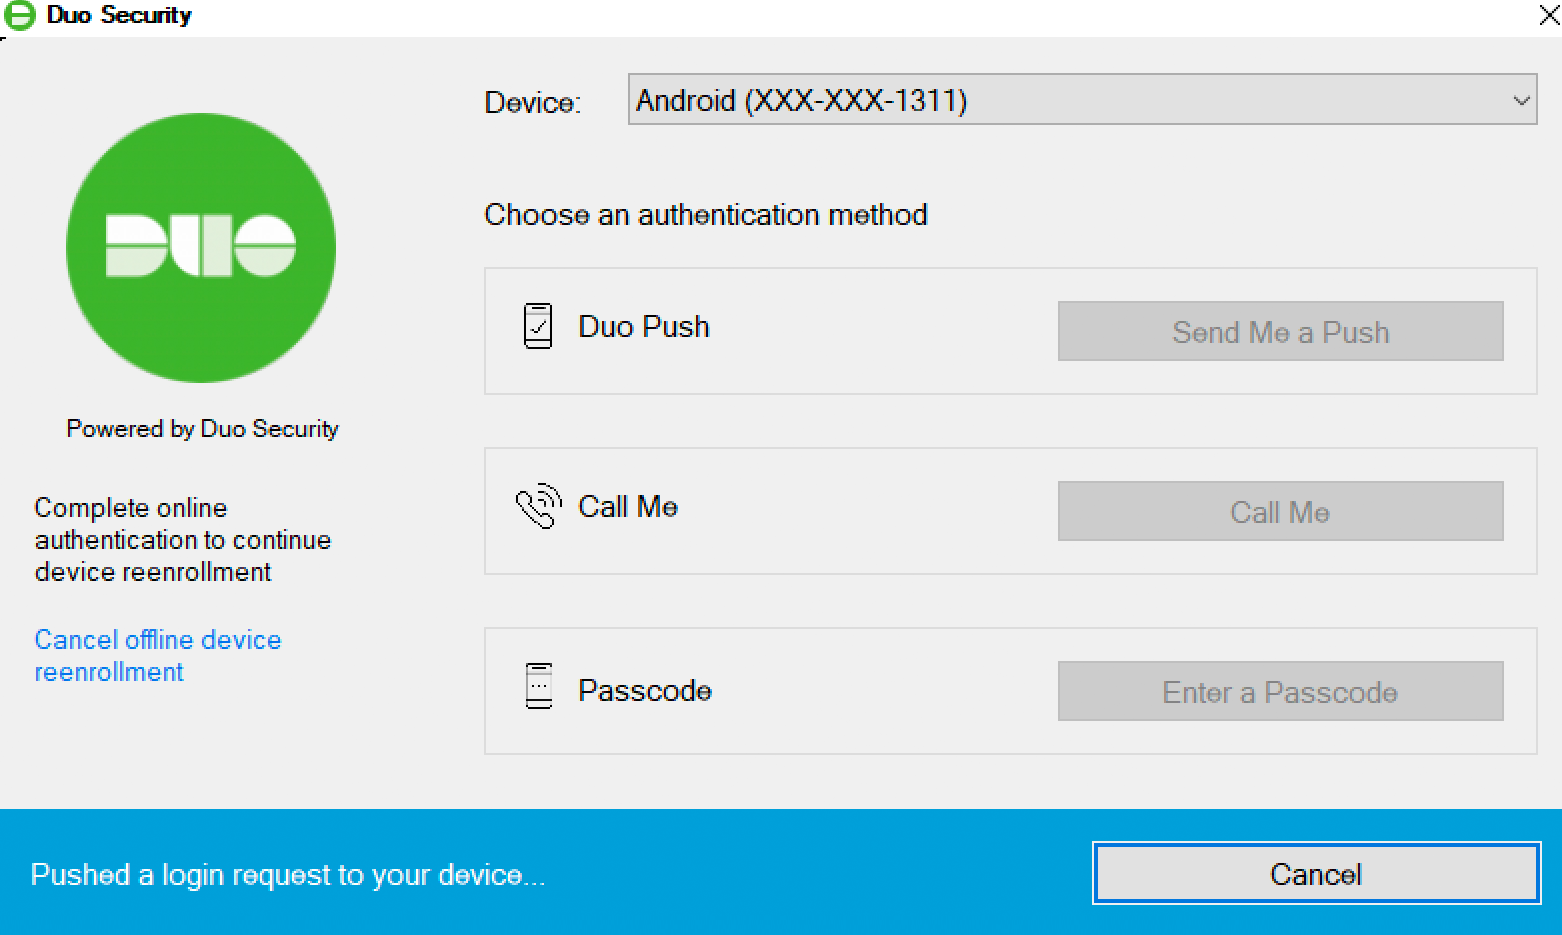 Duo Offline Access Reactivation - Authenticate